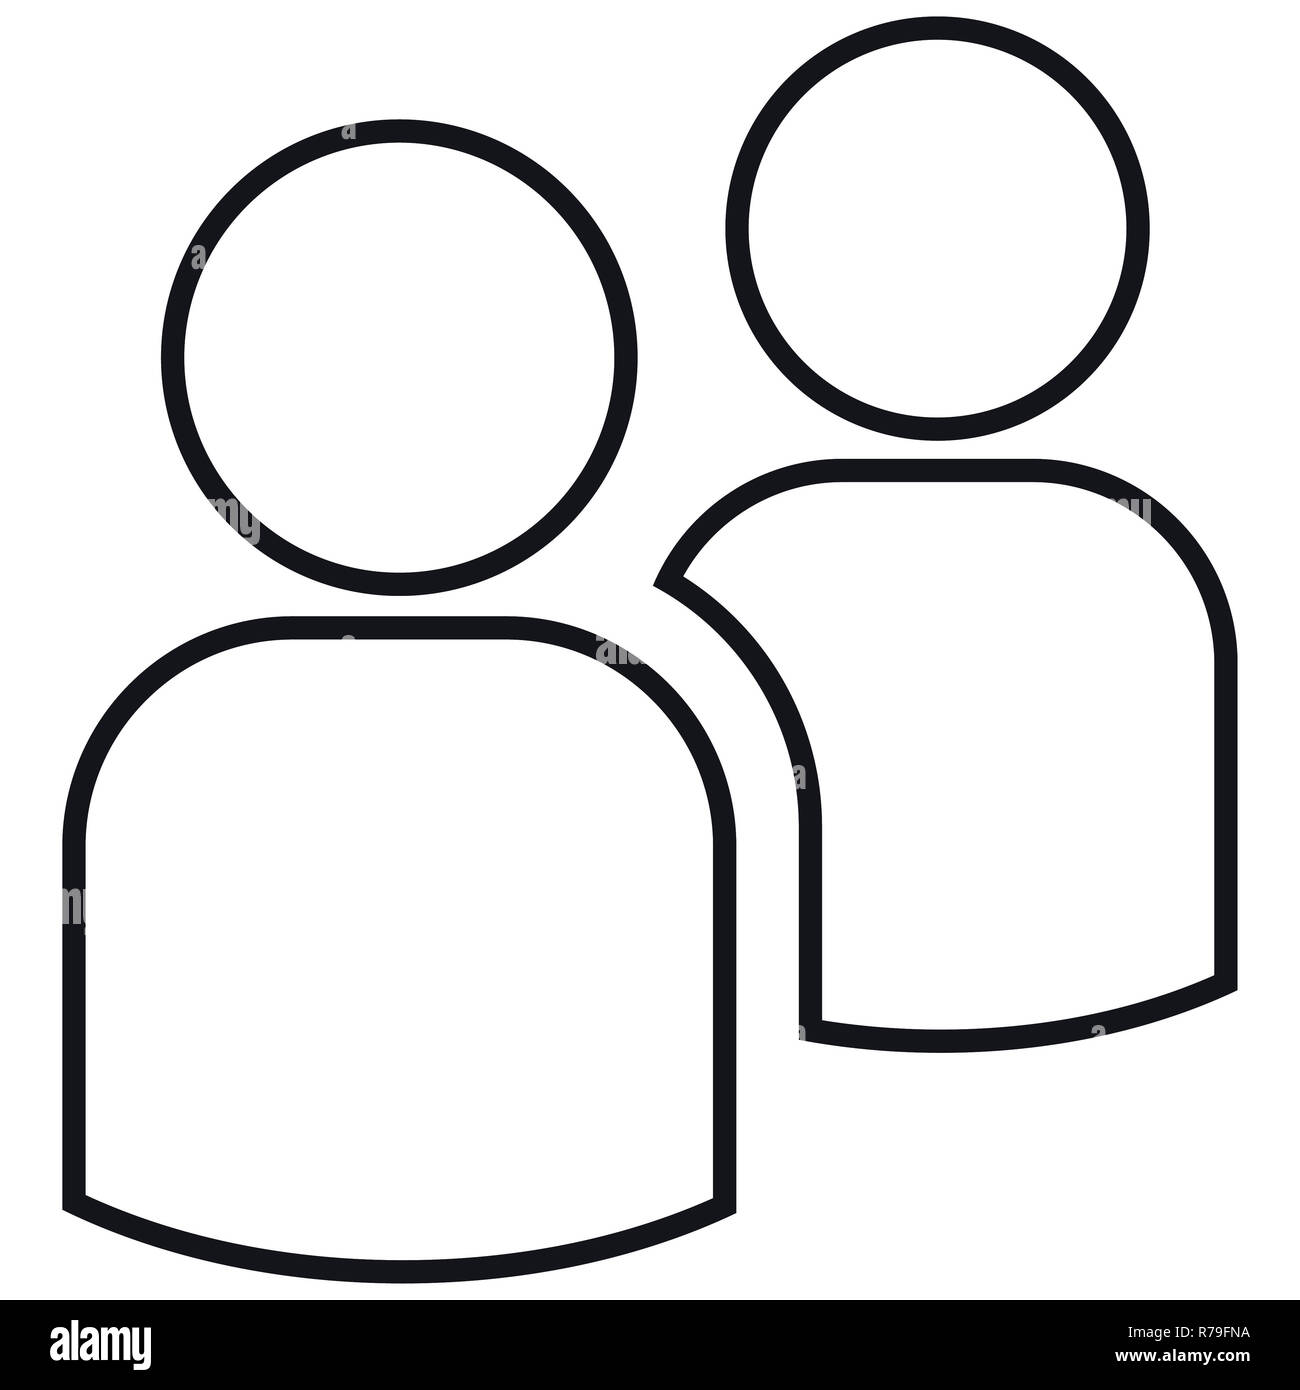 Icon two contours of people. Simple  illustration. Isolated on a white background. - Stock Image